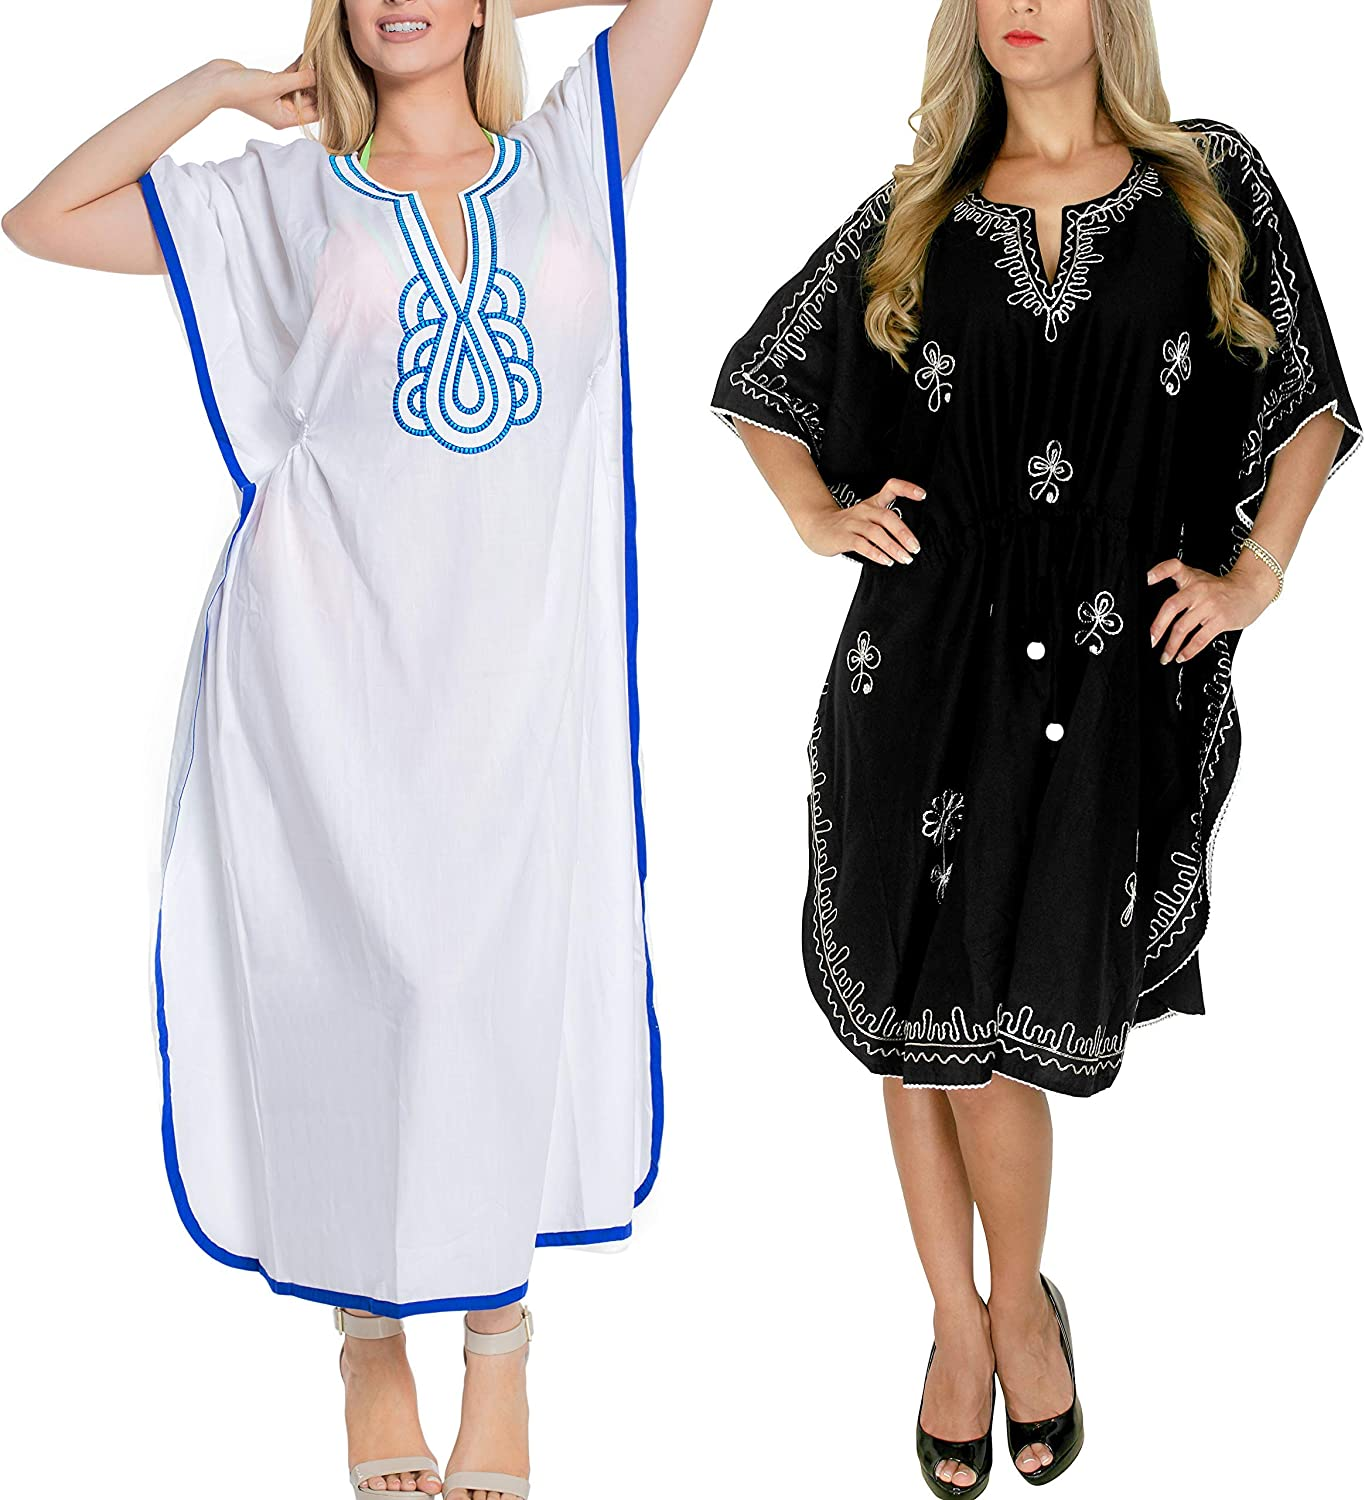 LA LEELA Women's Plus Size Beach Caftan Swimsuit Cover Ups US 16-28W Work from Home Clothes Women Midi Kaftan Casual Long Dress Maxi Cover up Pack of 2